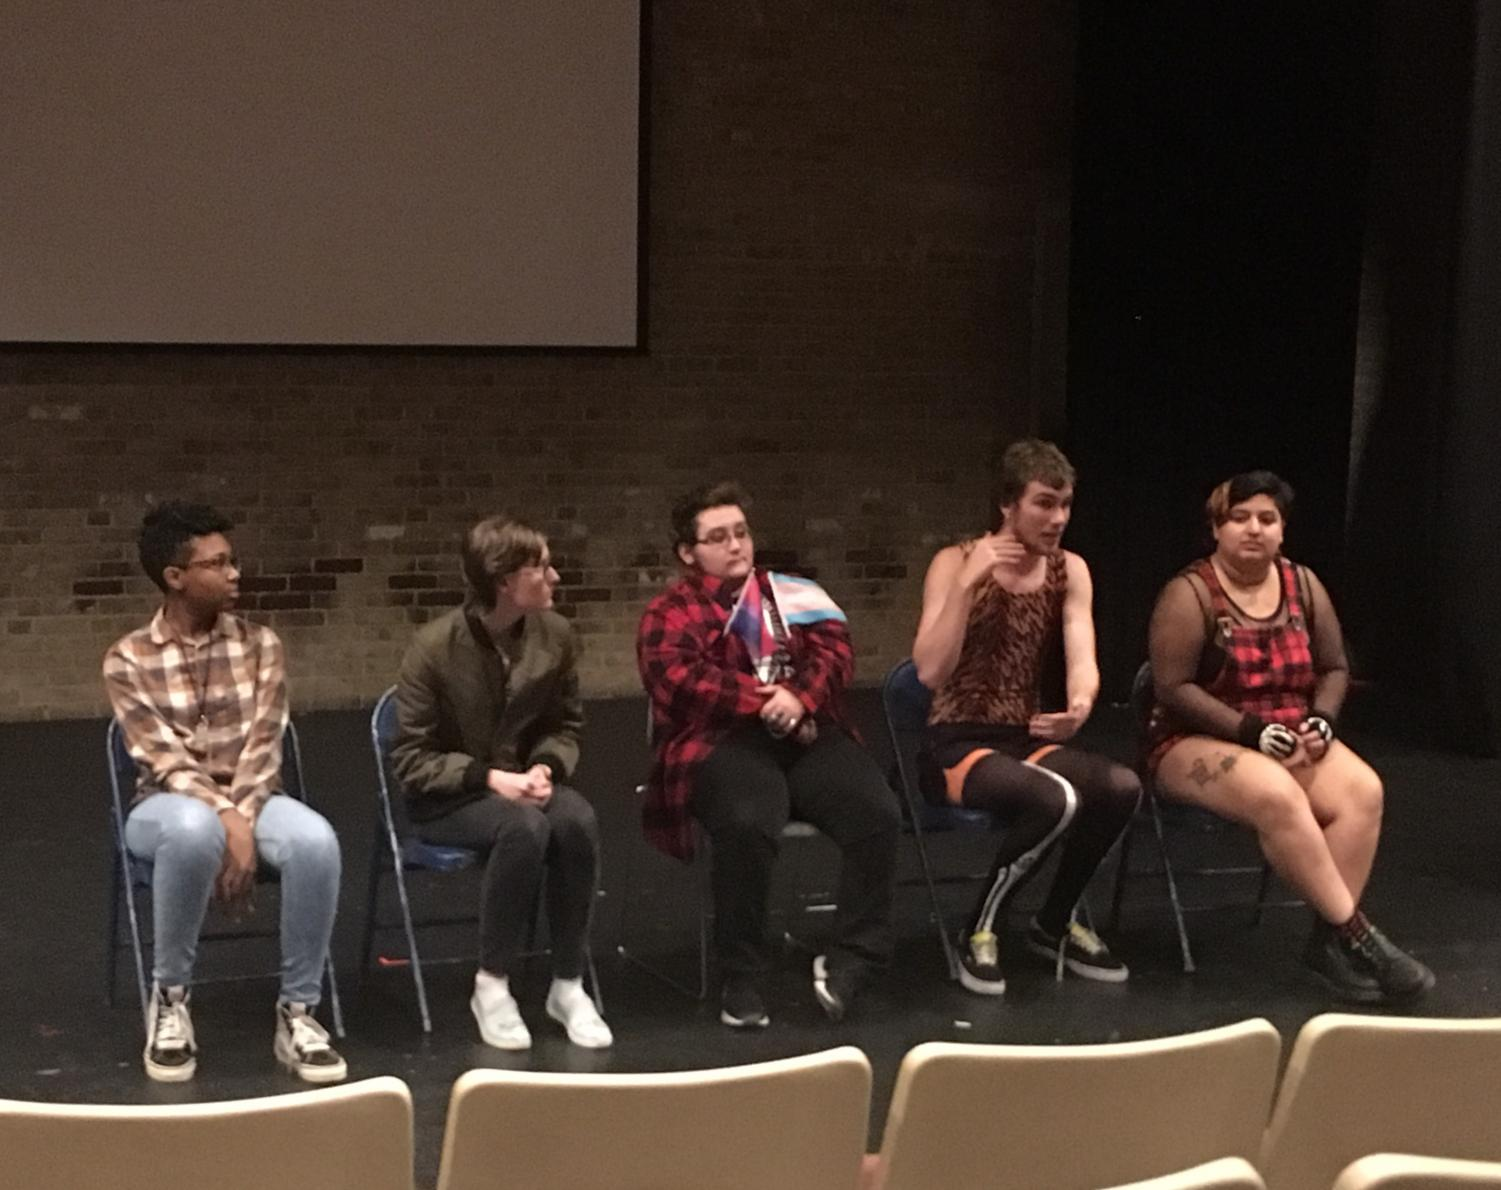 Members of the Gay-Straight Alliance share their coming out stories in a panel discussion.